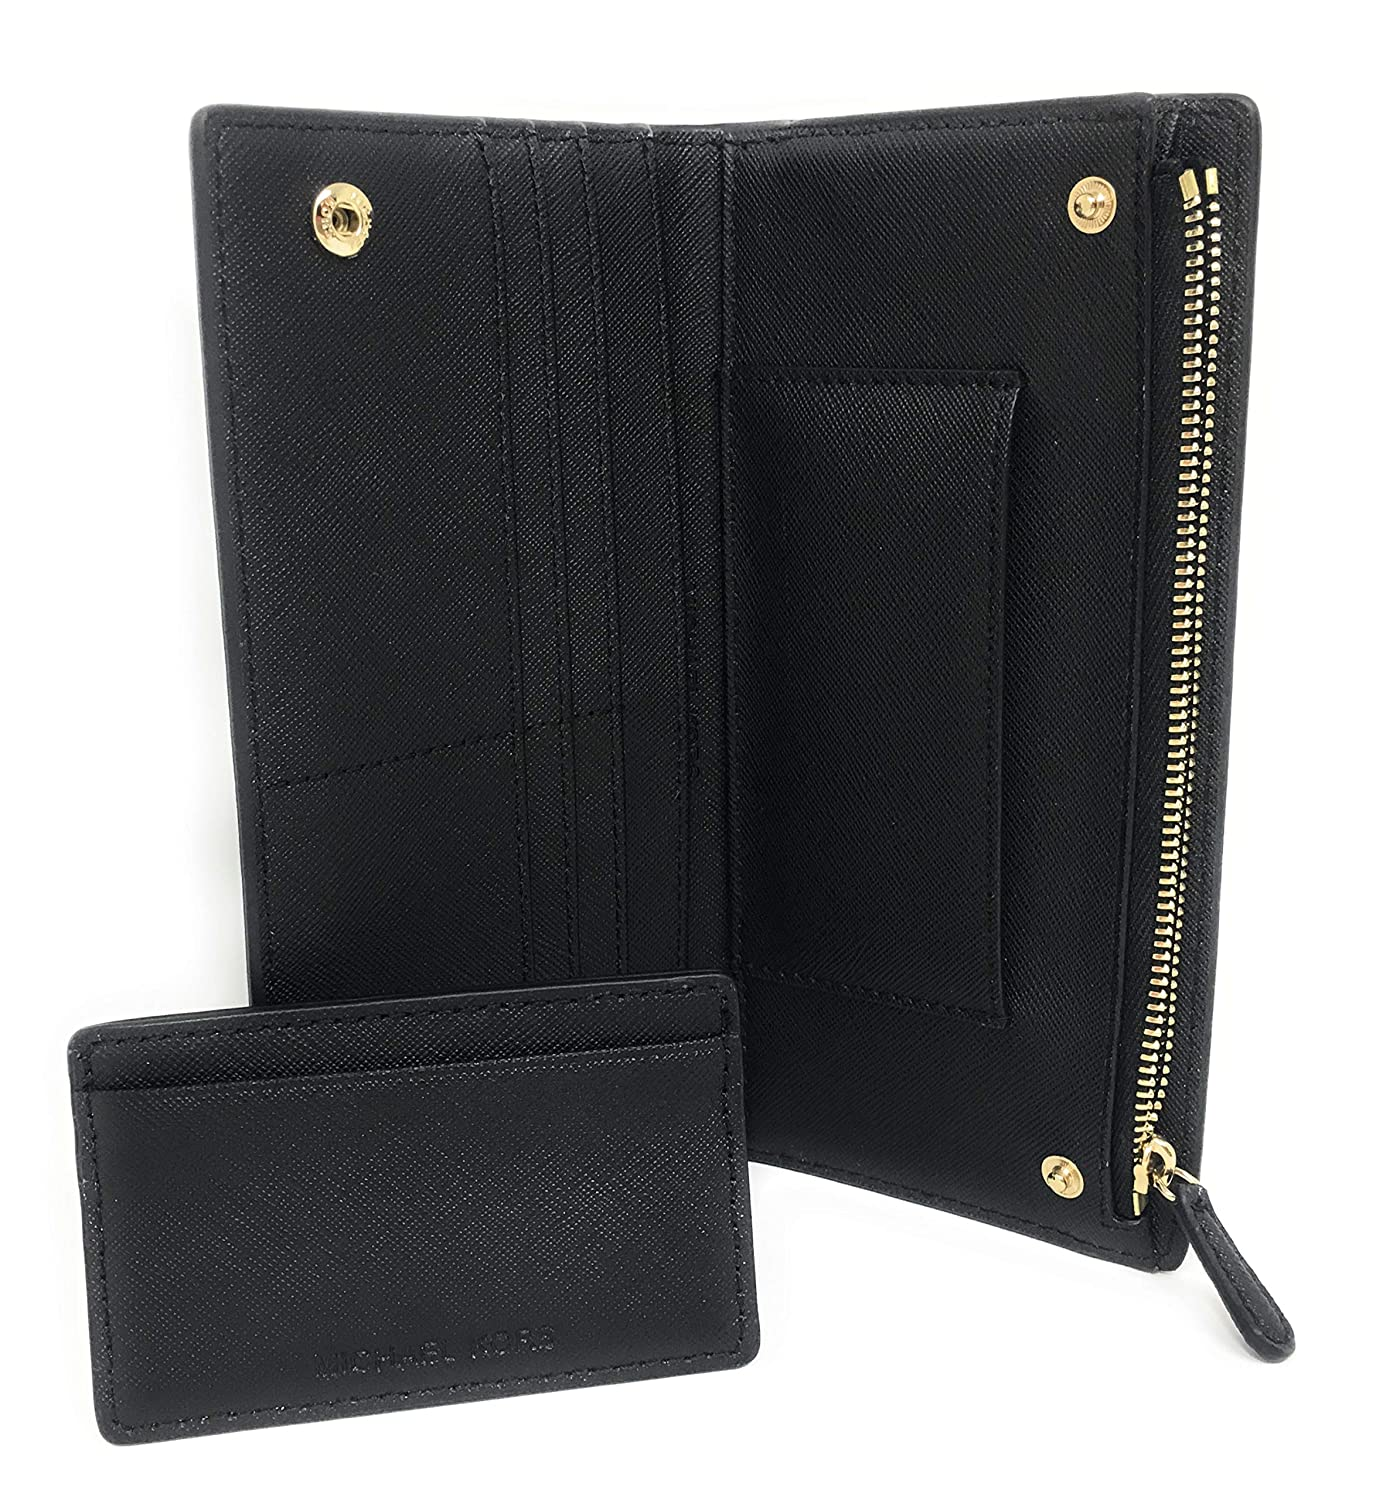 7dfcedc6ee8a Amazon.com: Michael Kors Jet Set Travel Leather Medium Large Card Case  Carryall Wallet with Removable ID Card Holder (Black with Gold Hardware)